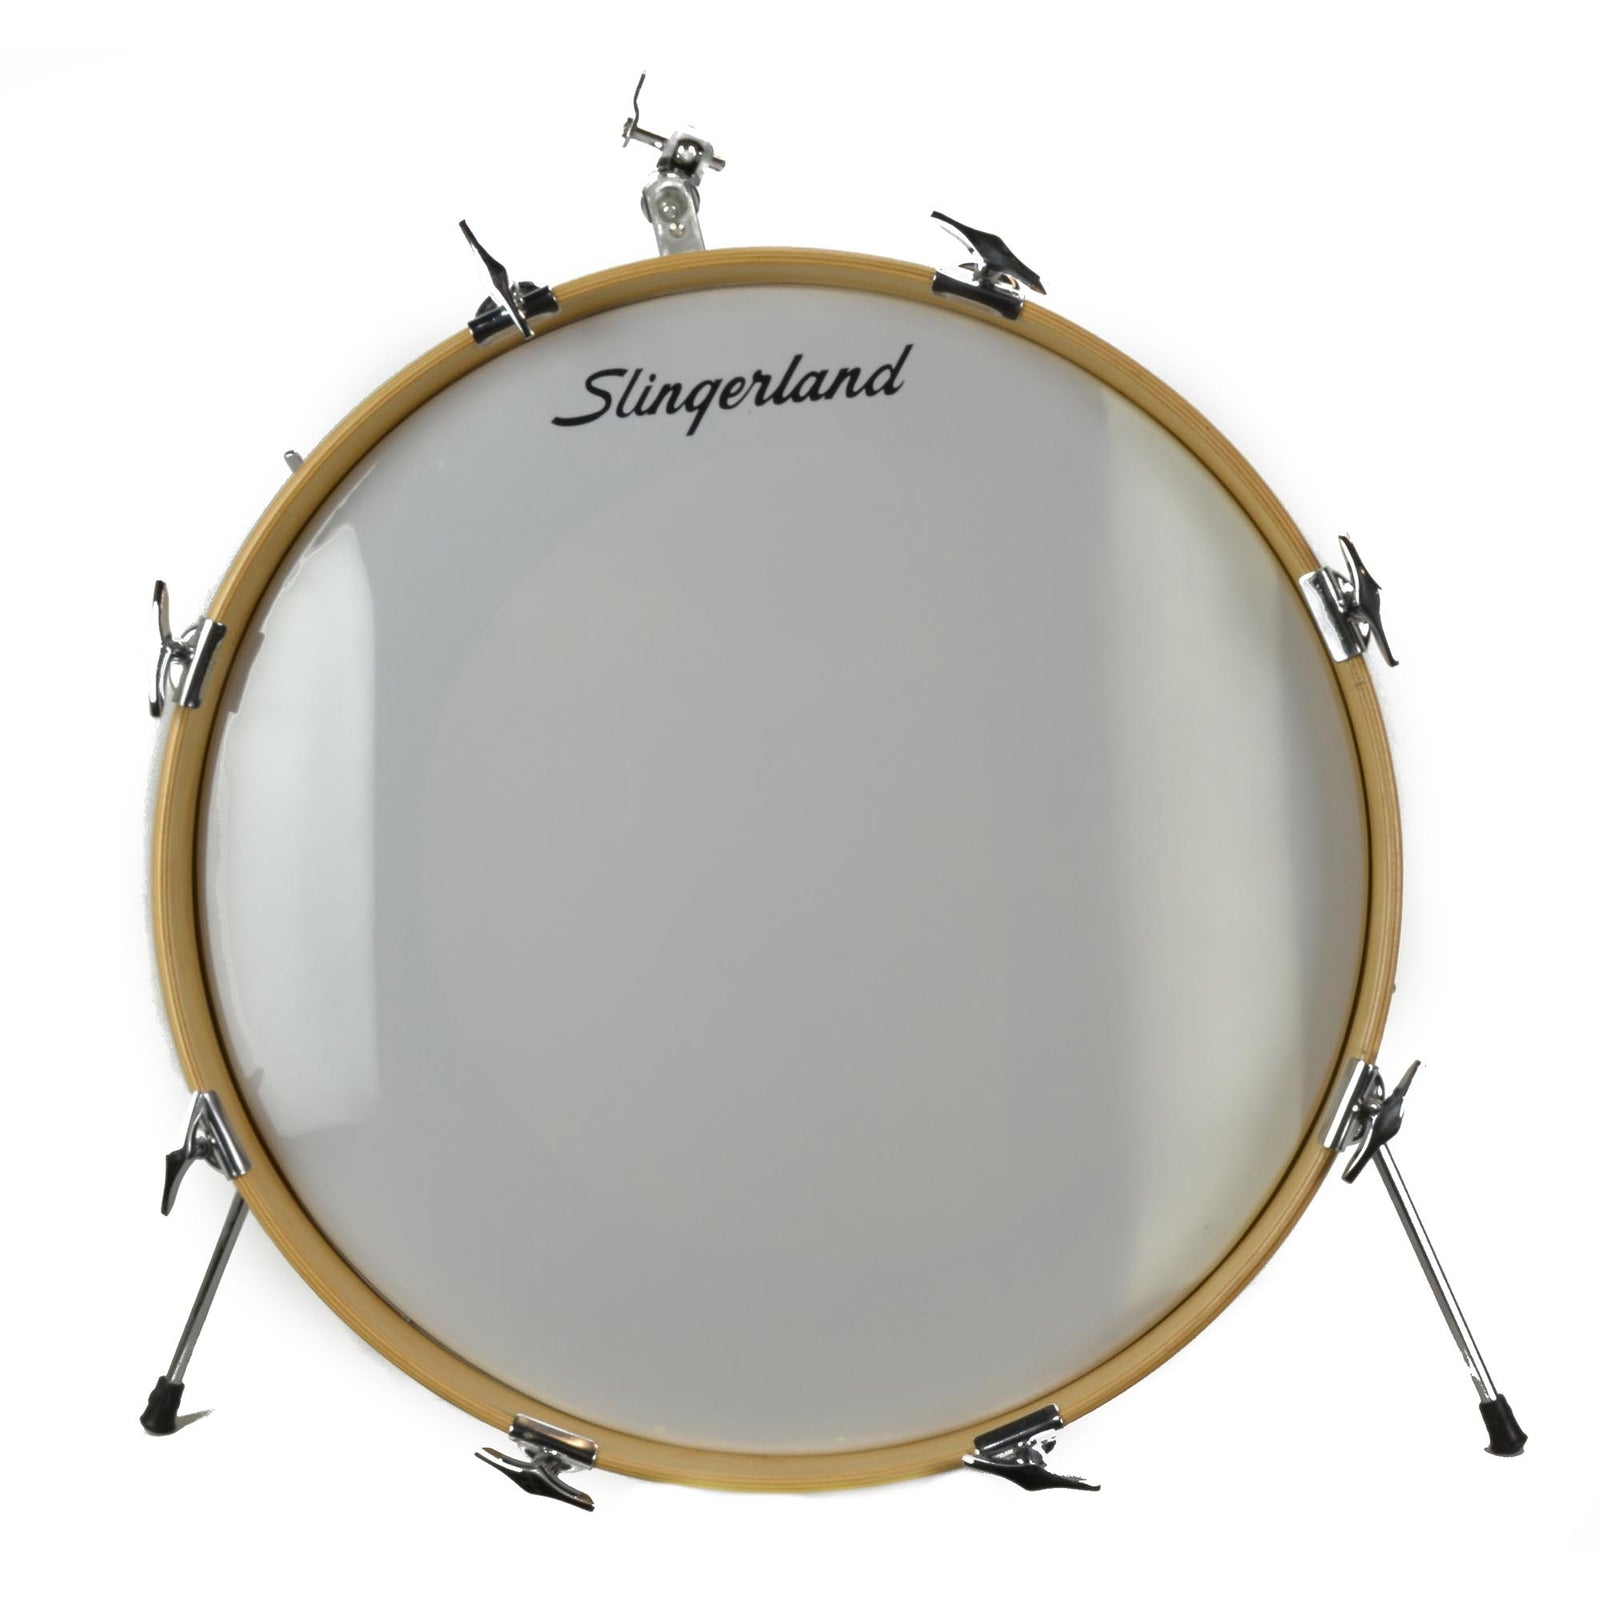 Slingerland 70's Rewrap - 4 Piece Kit - Used